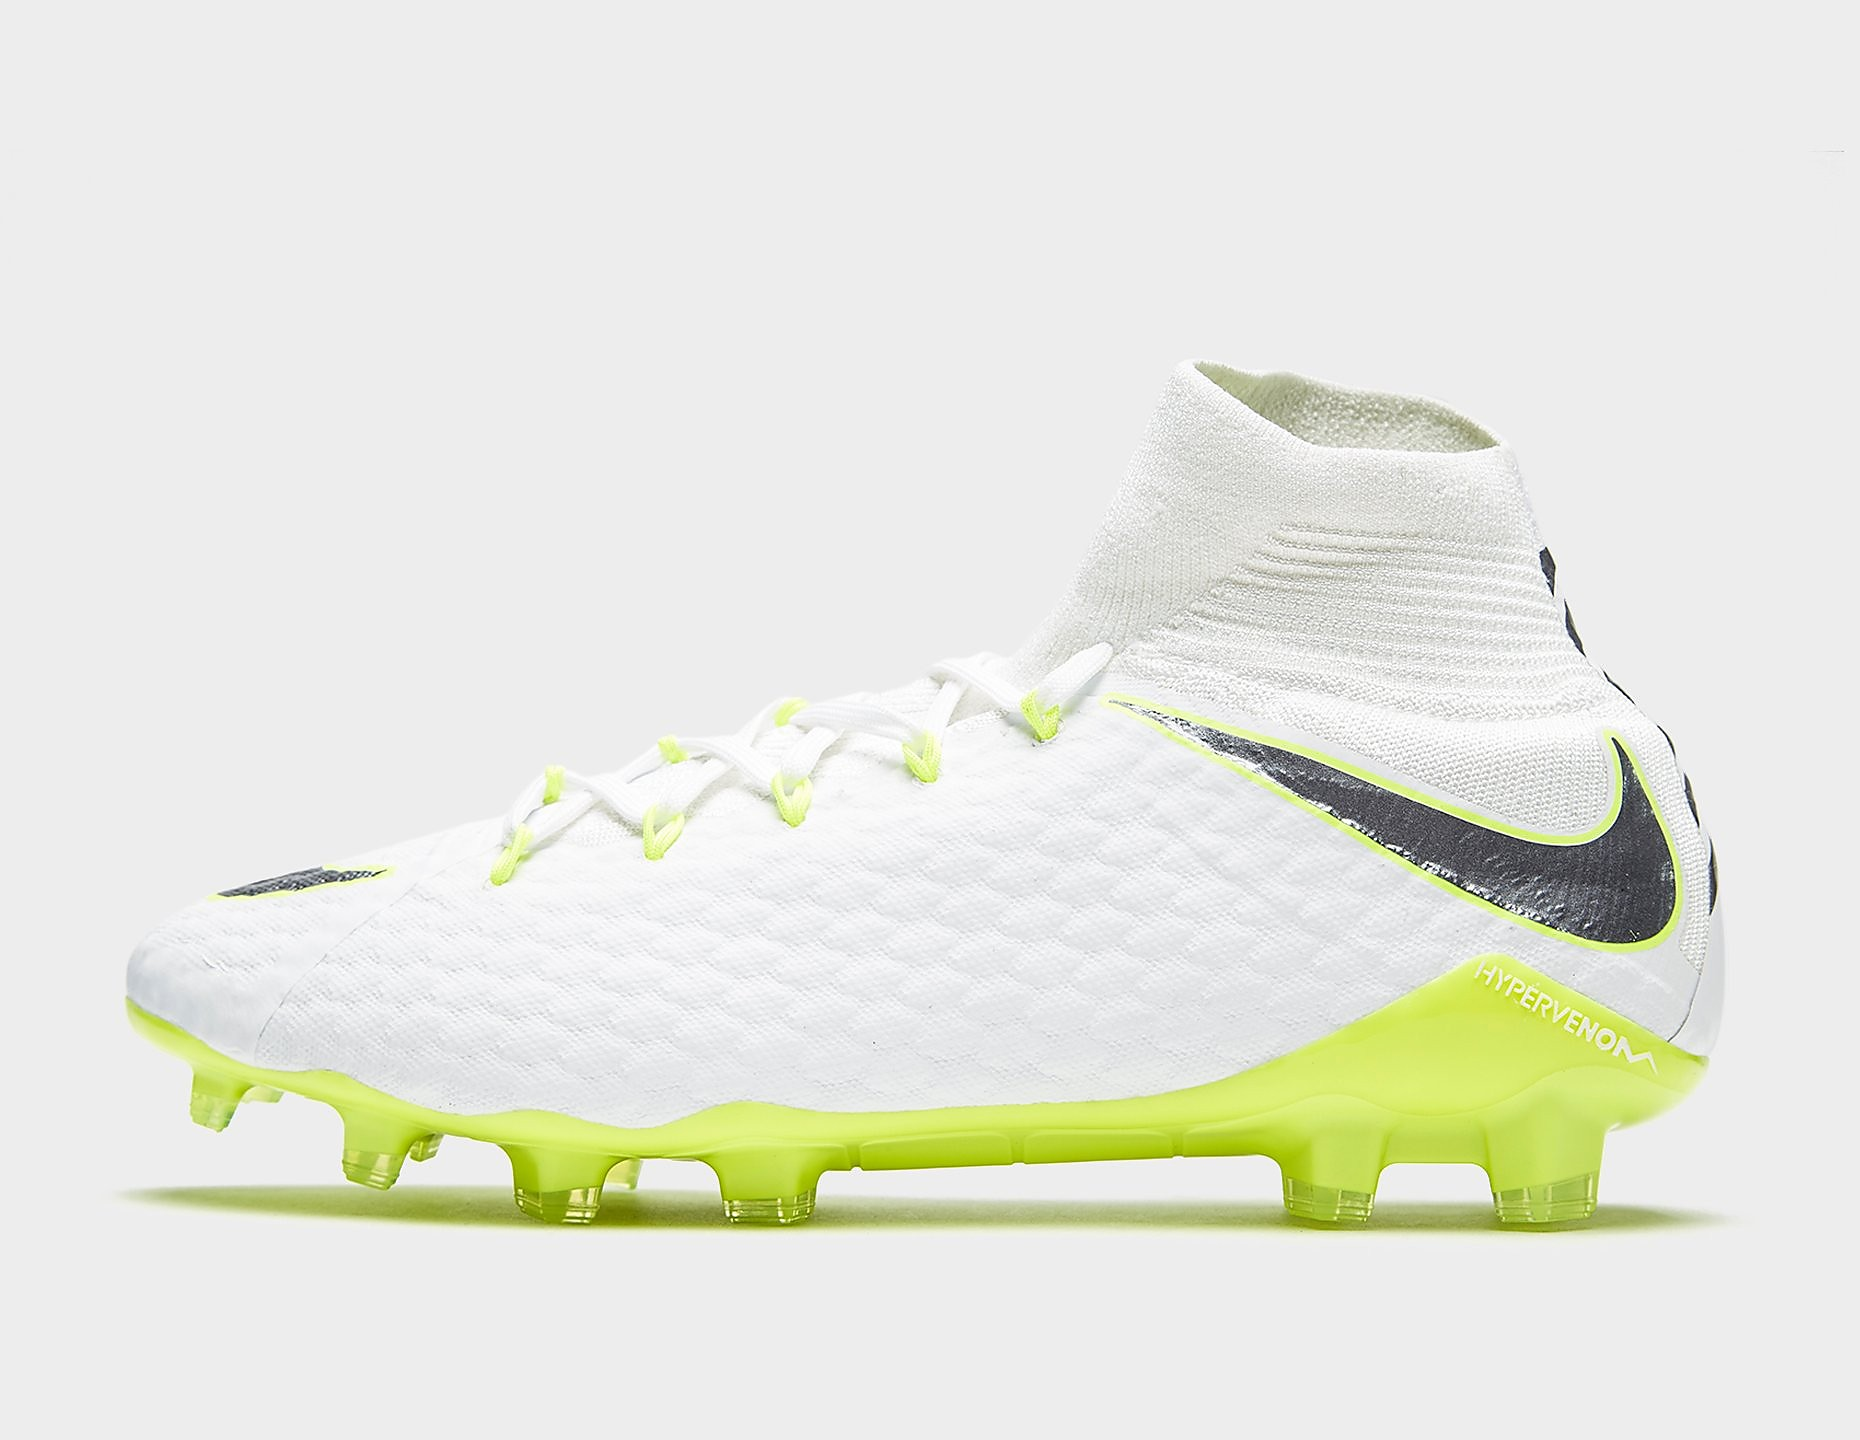 Nike Hypervenom Phantom Pro Dynamic Fit FG